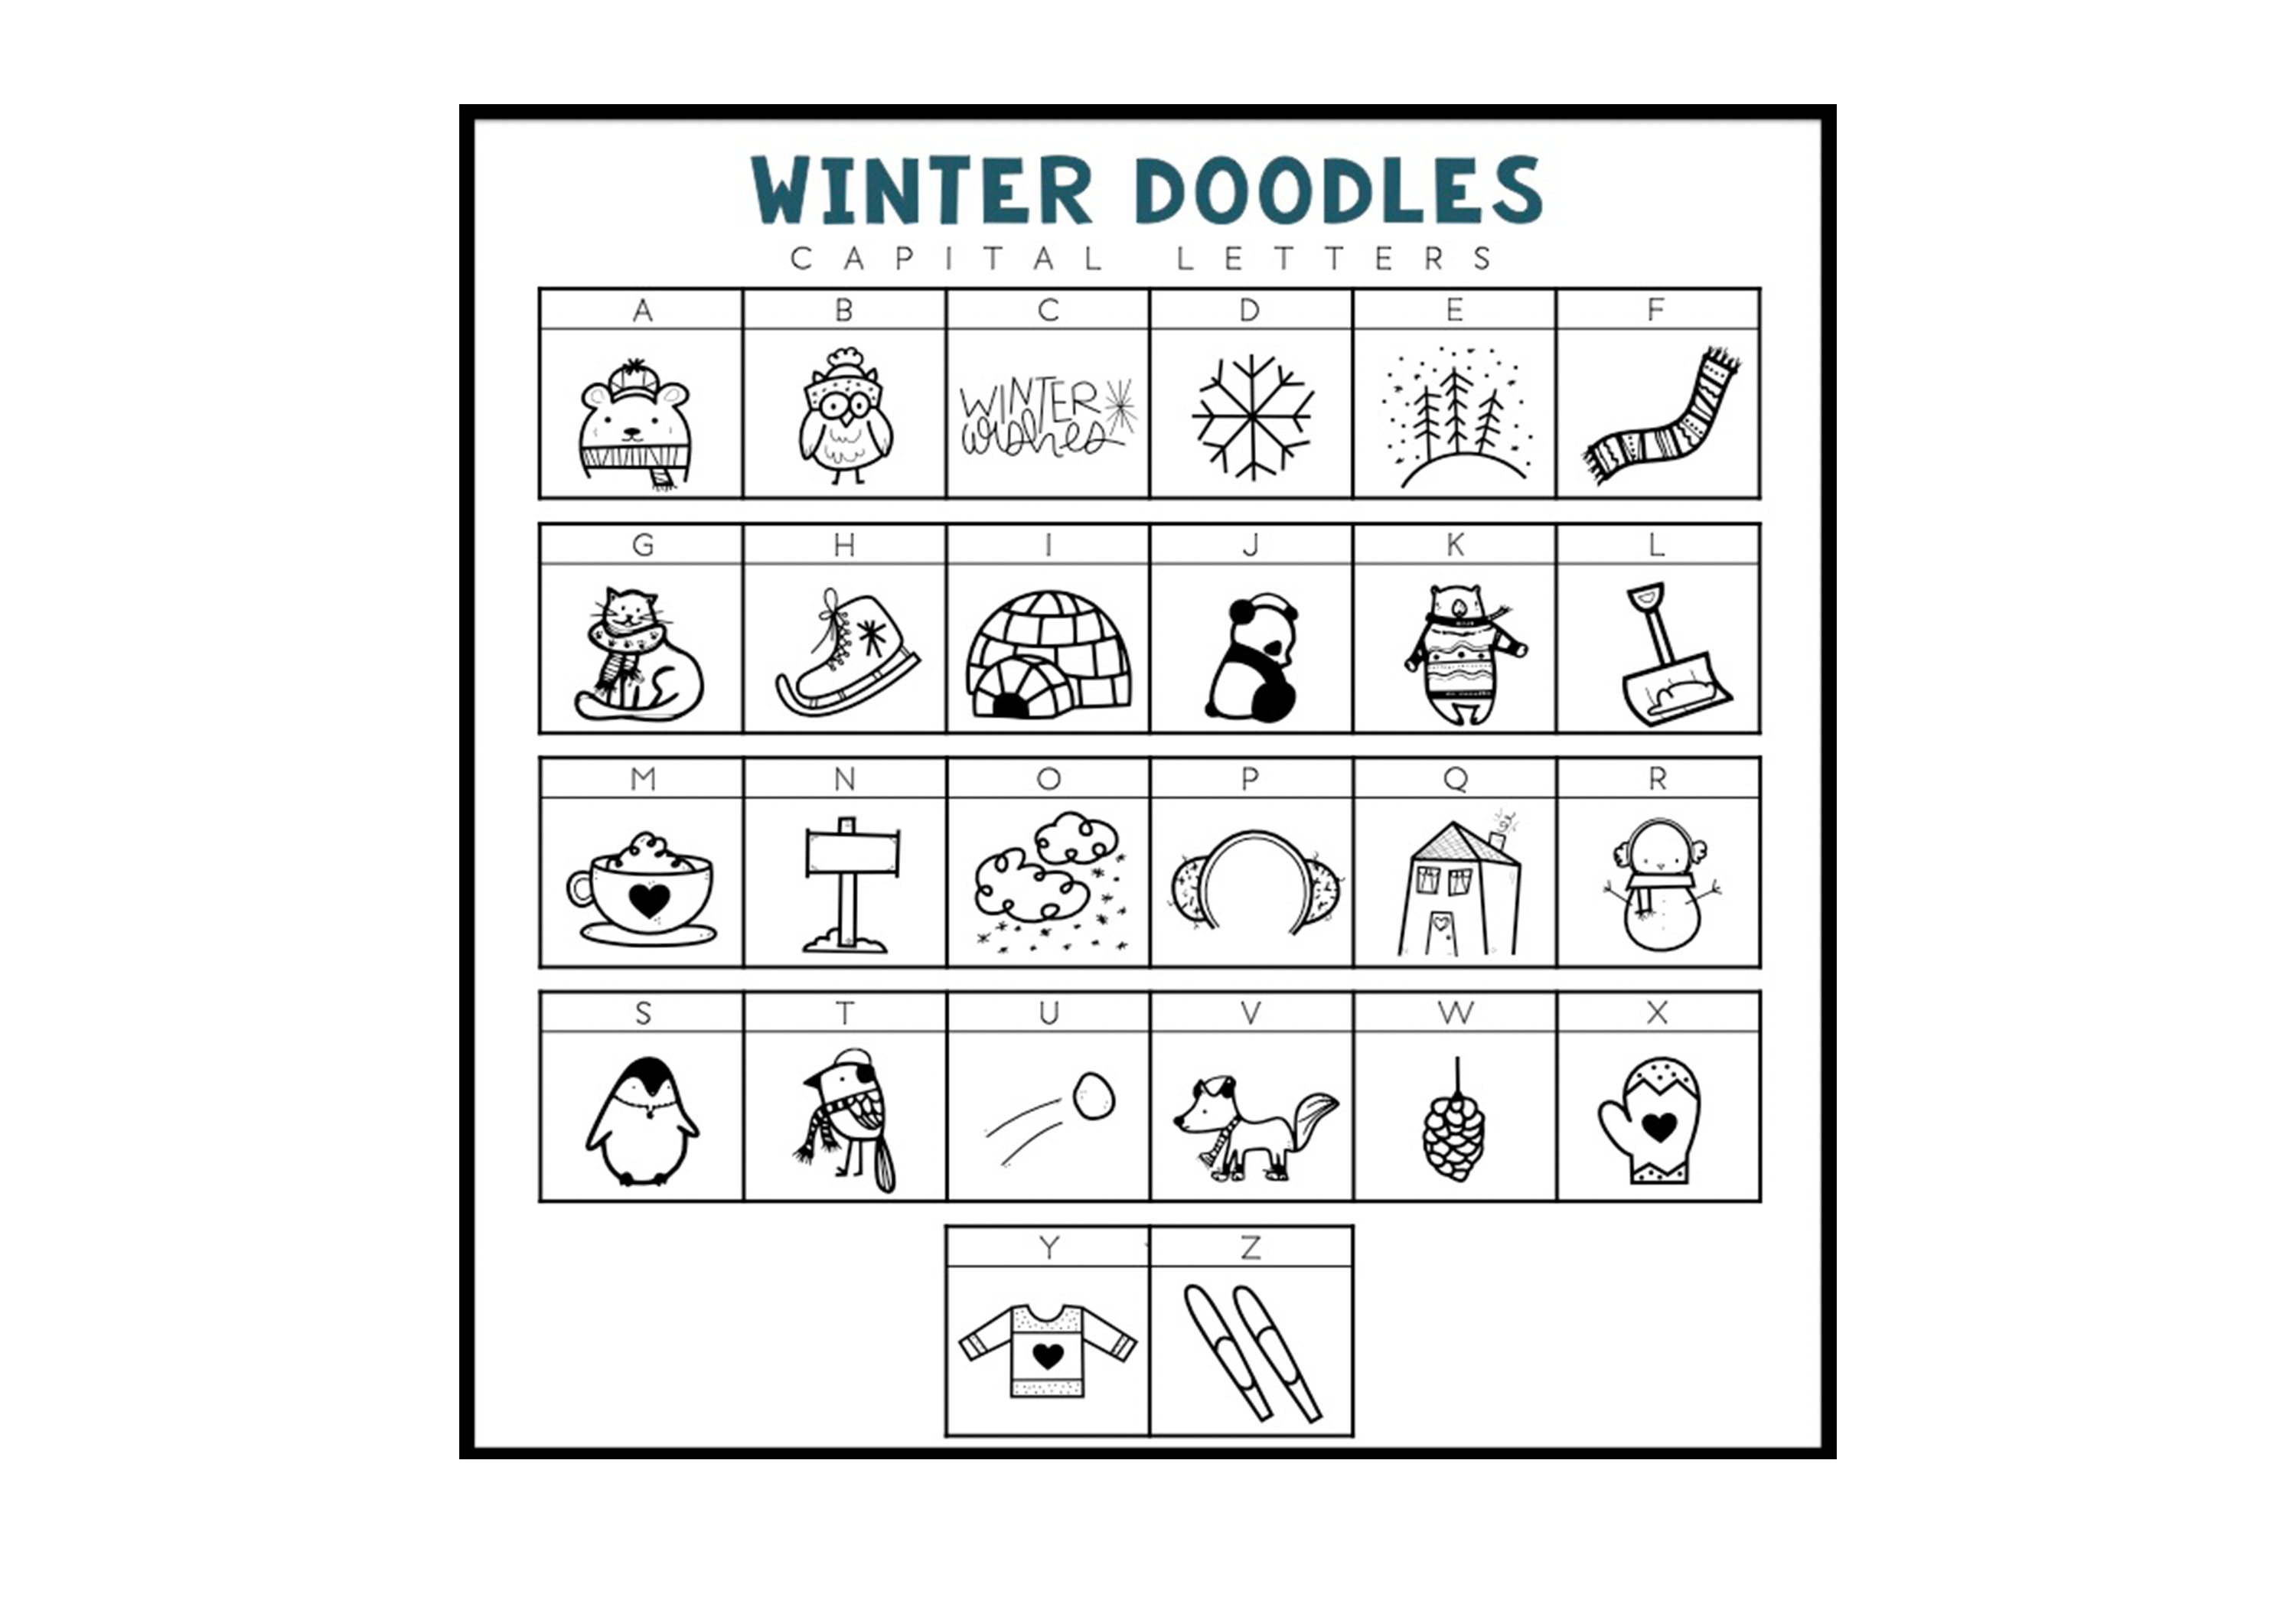 Winter Wishes - A Winter Doodles Font example image 3